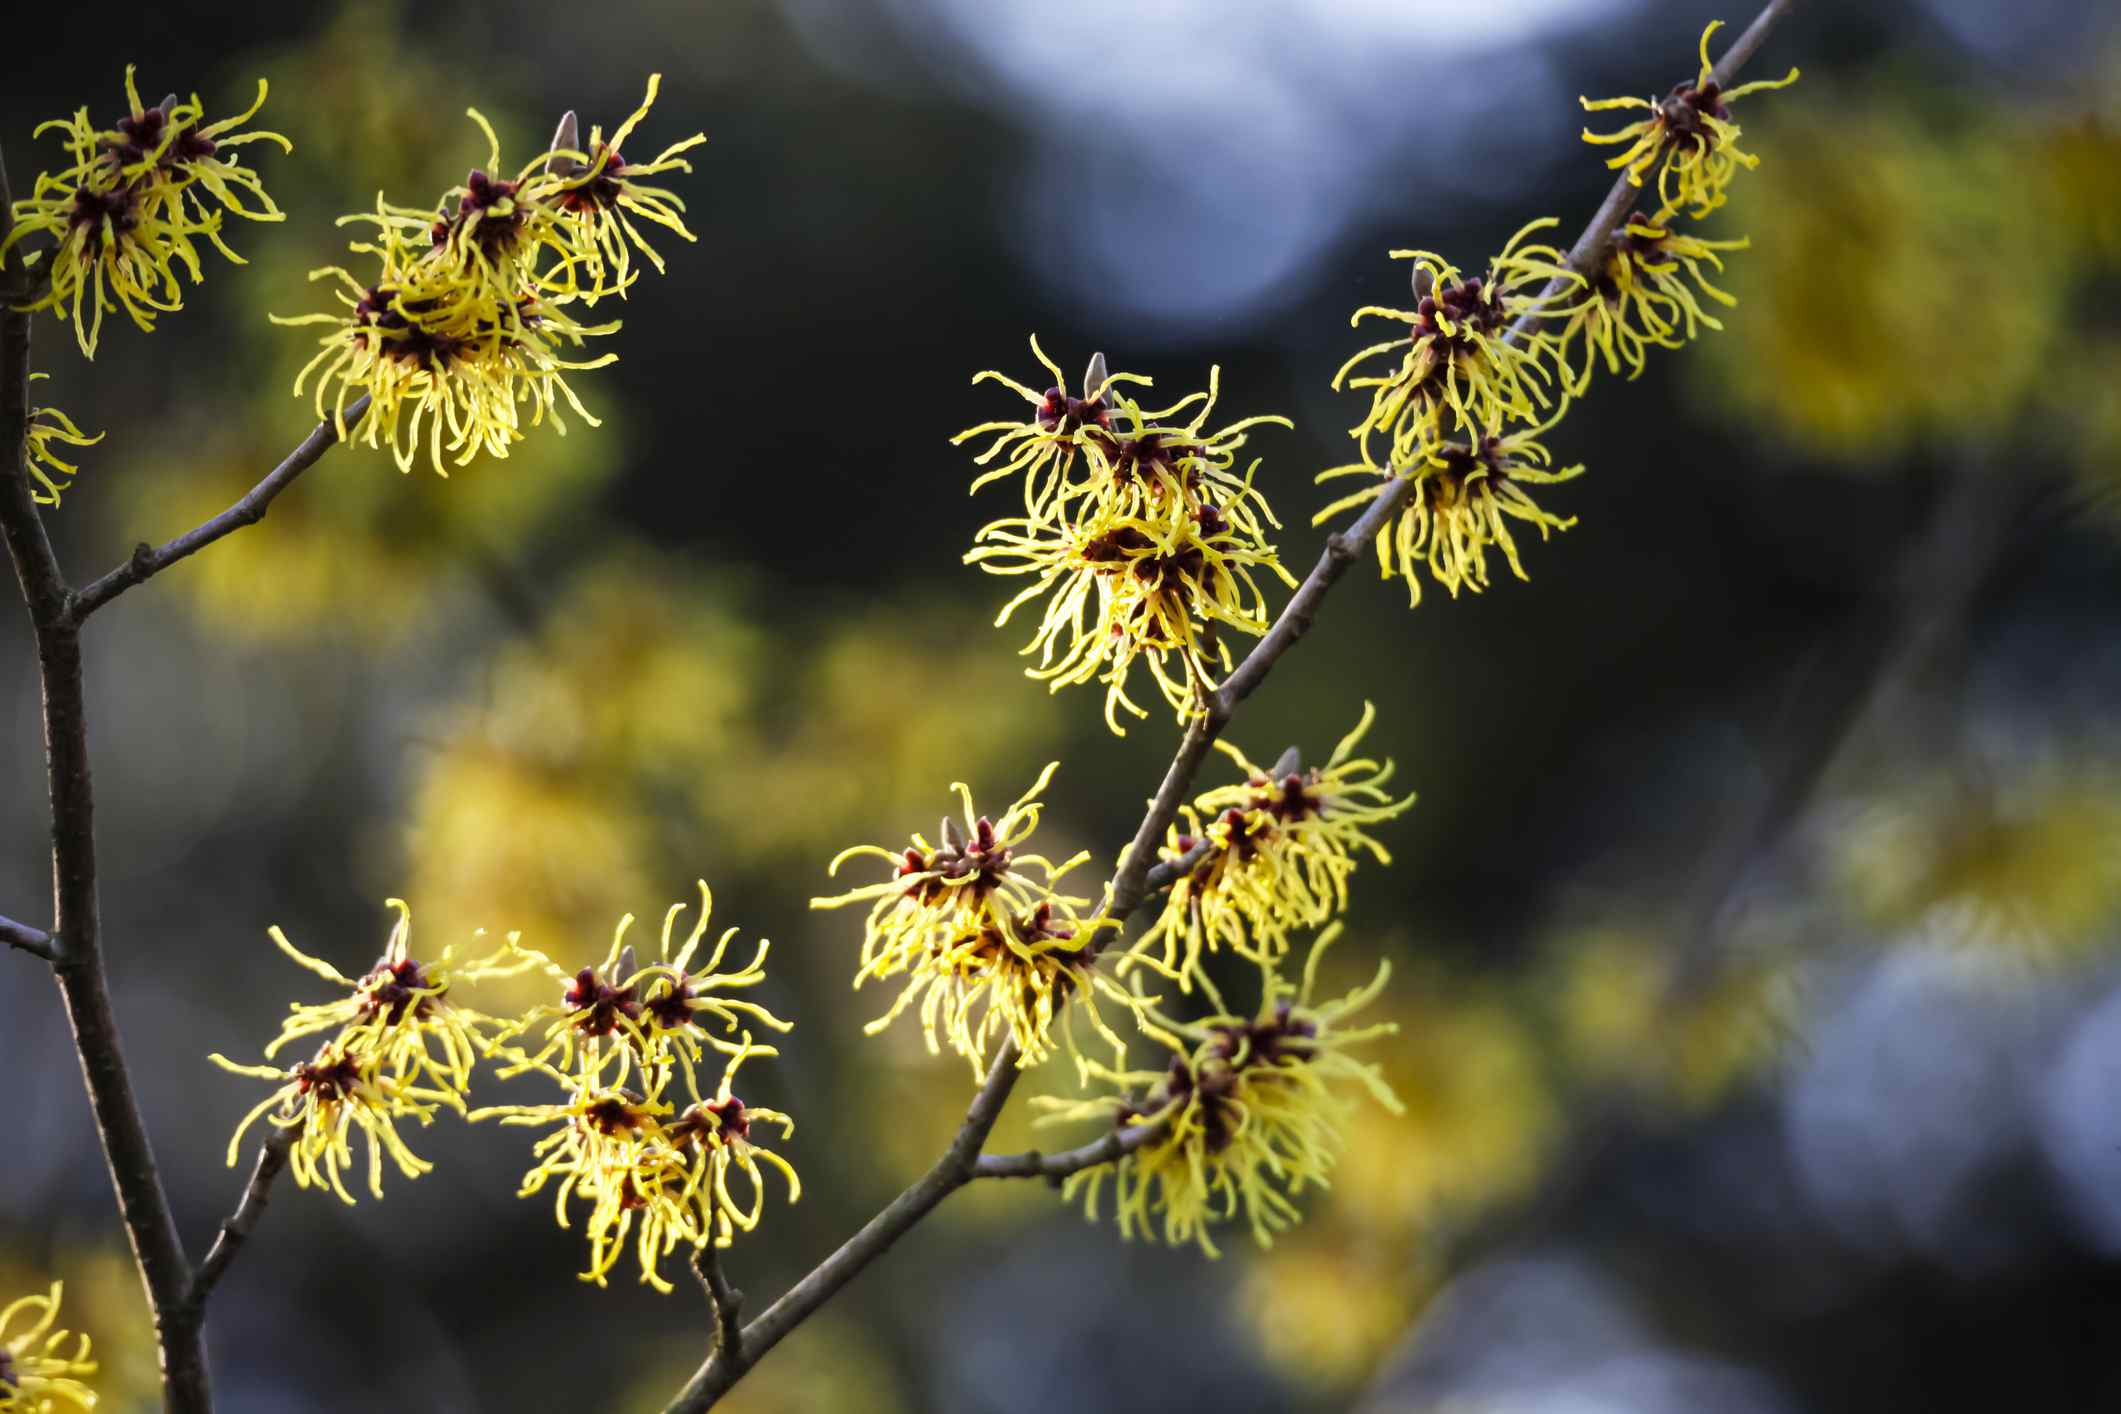 Branches of witch hazel shrub in bloom